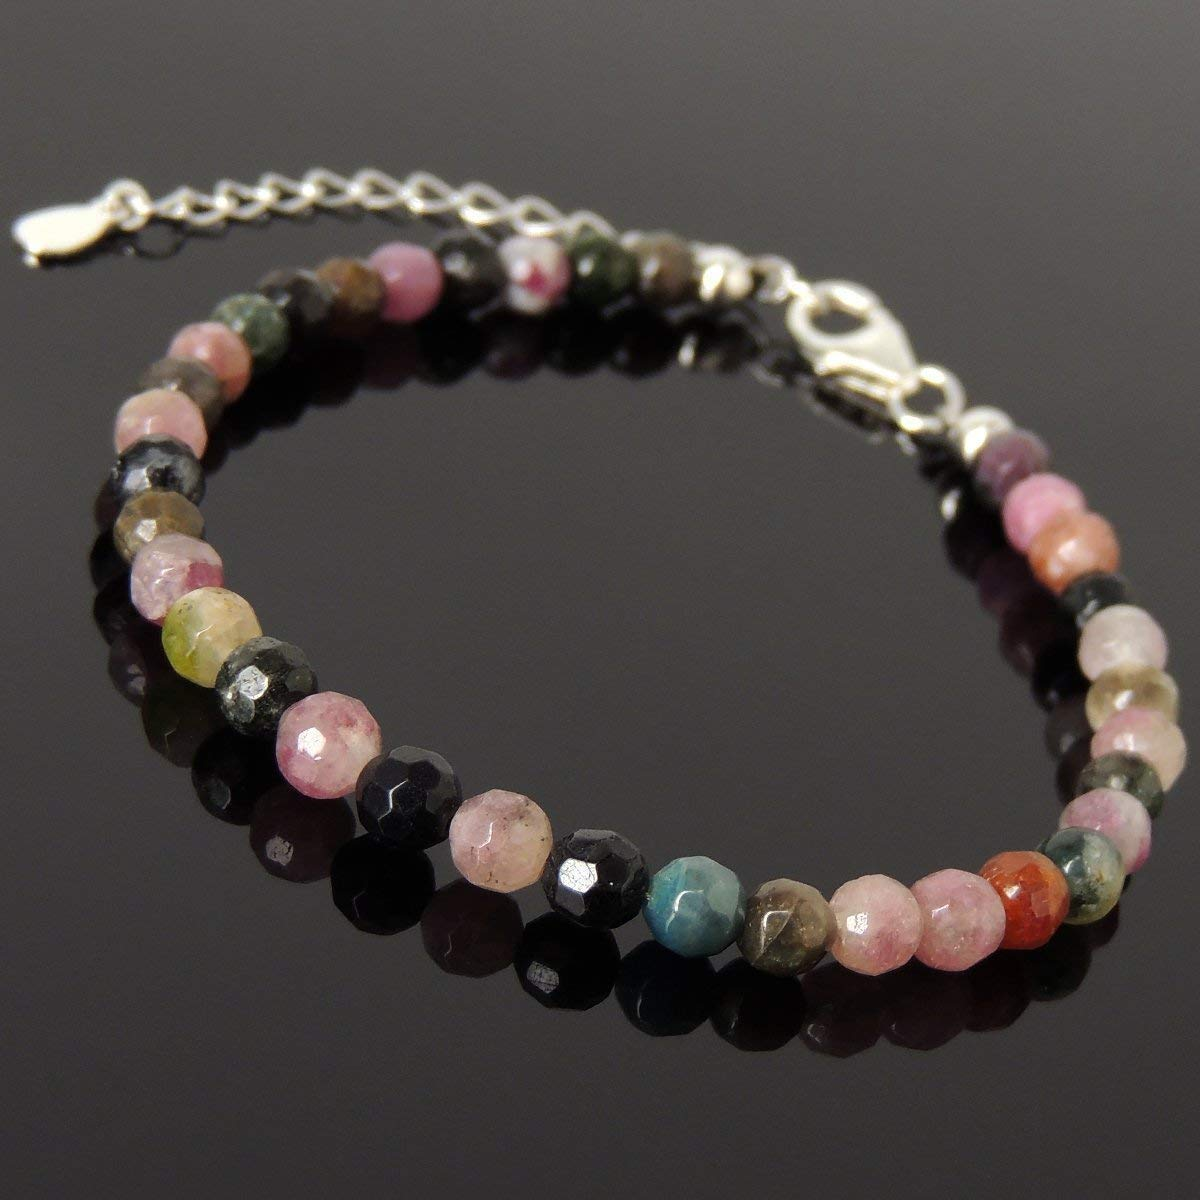 Men and Women Bracelet Handmade with 5mm Natural Faceted Multi-color Tourmaline and Genuine 925 Sterling Silver Beads, Clasp with Link